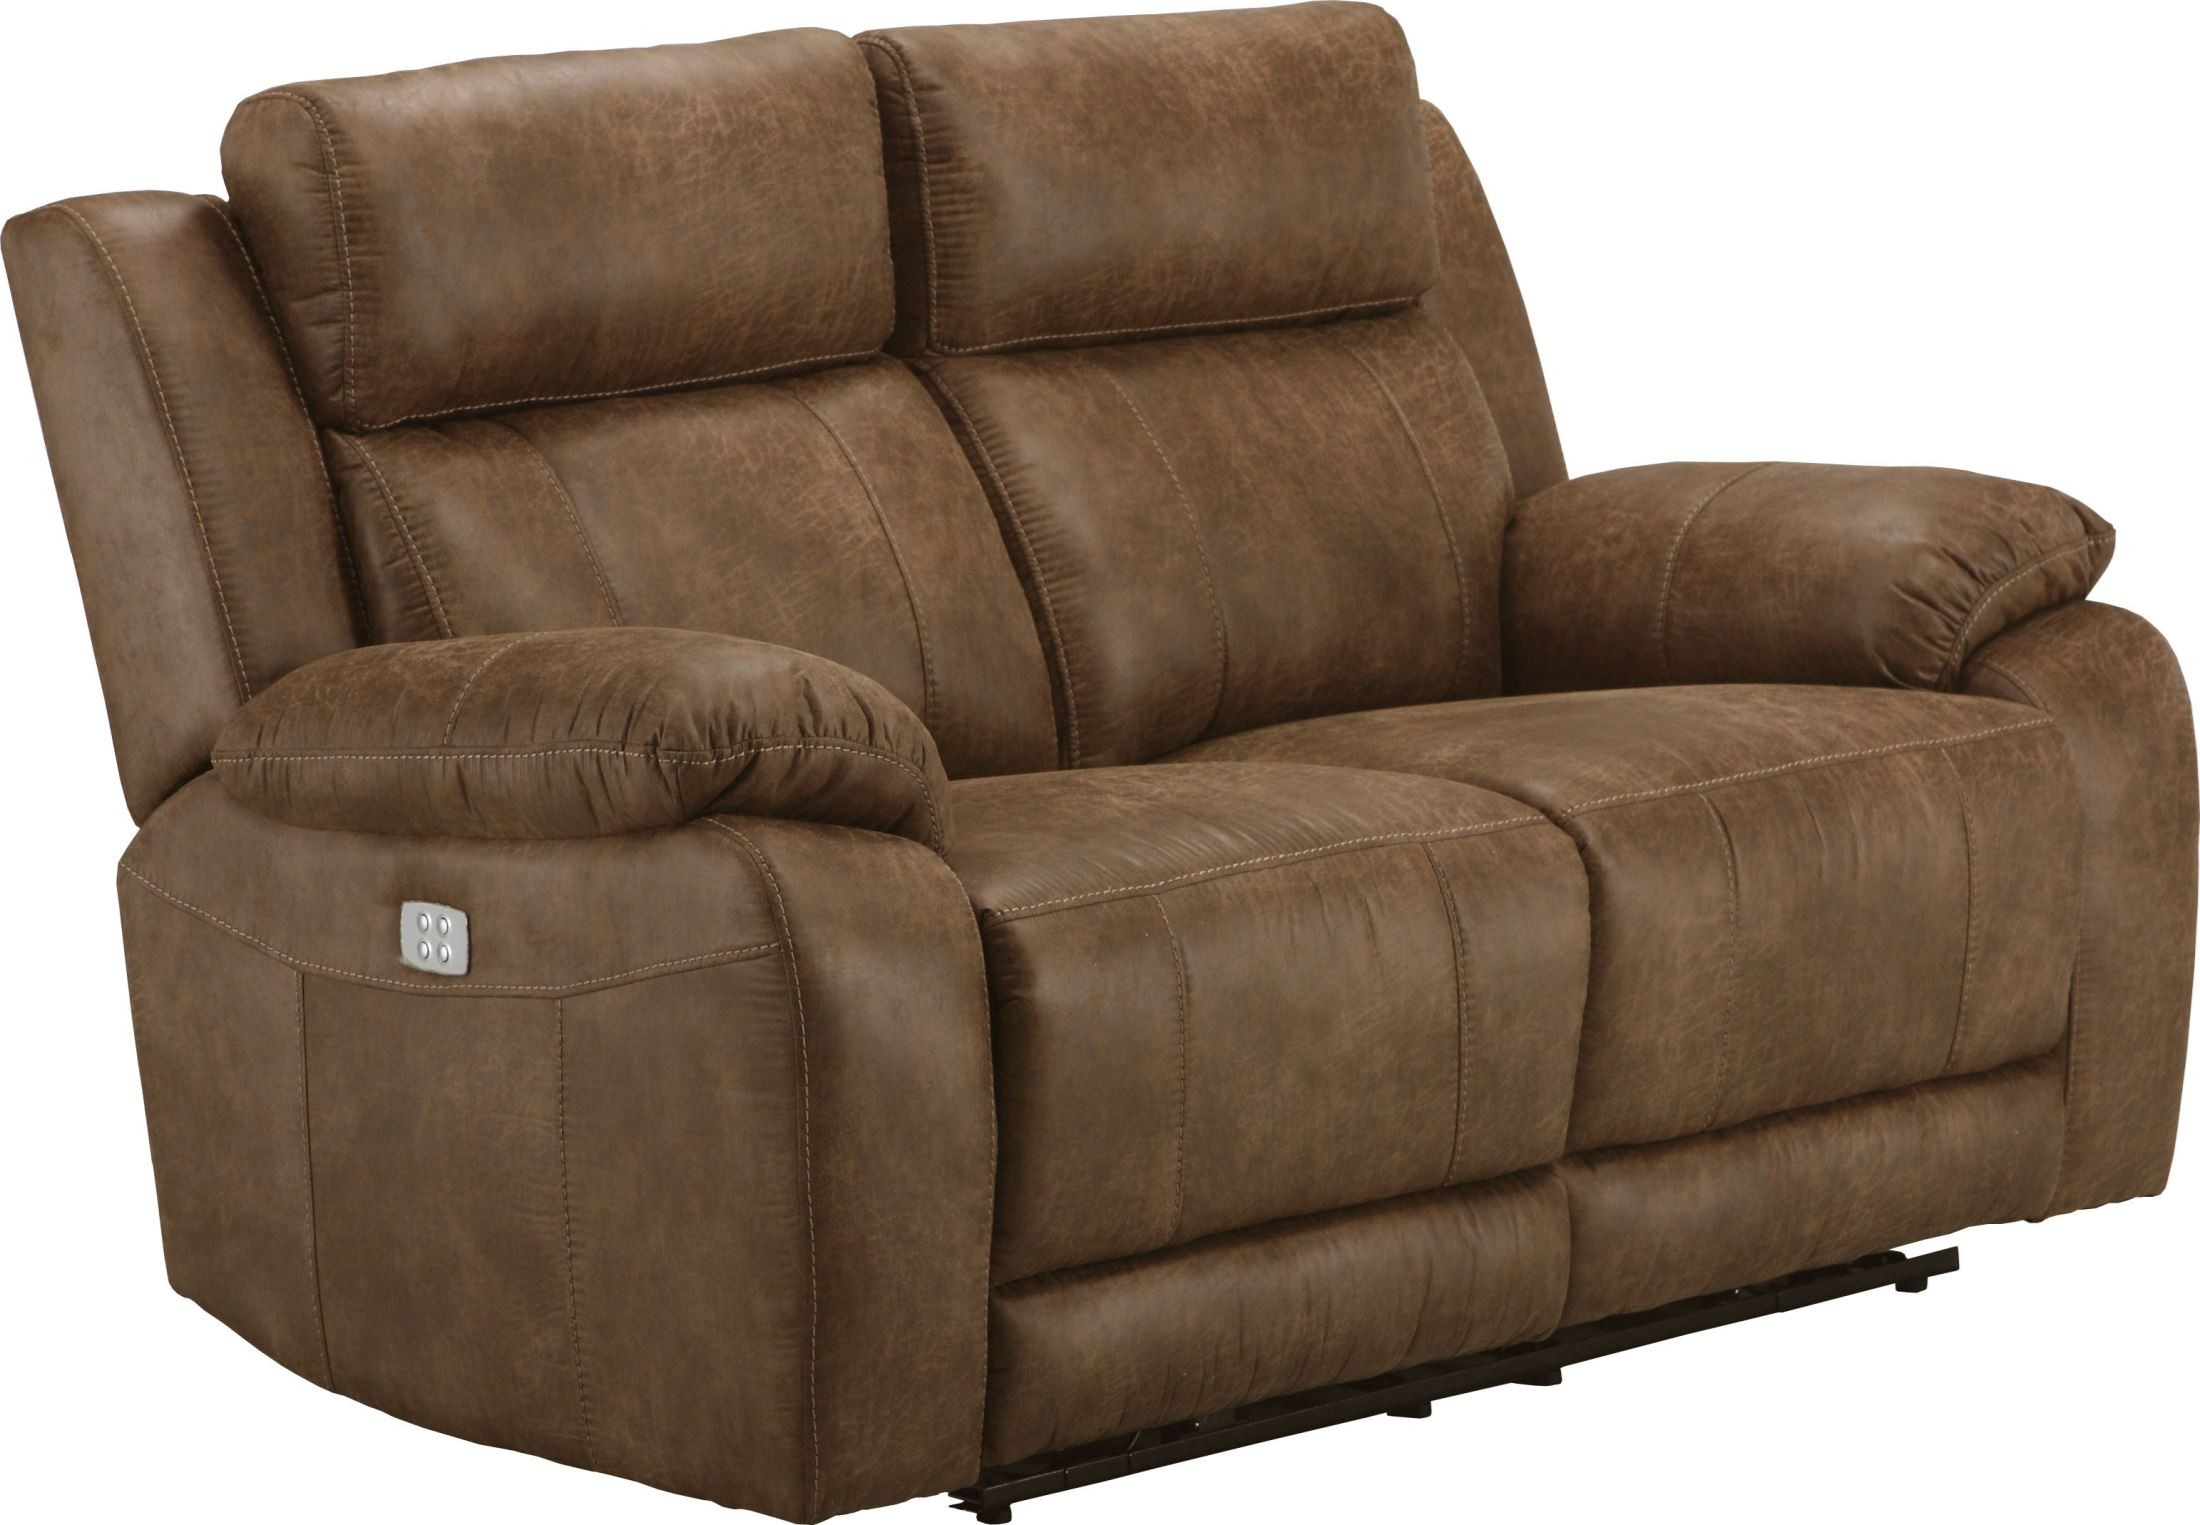 Mcgraw Palomino Dual Power Reclining Loveseat From Parker Living Coleman Furniture